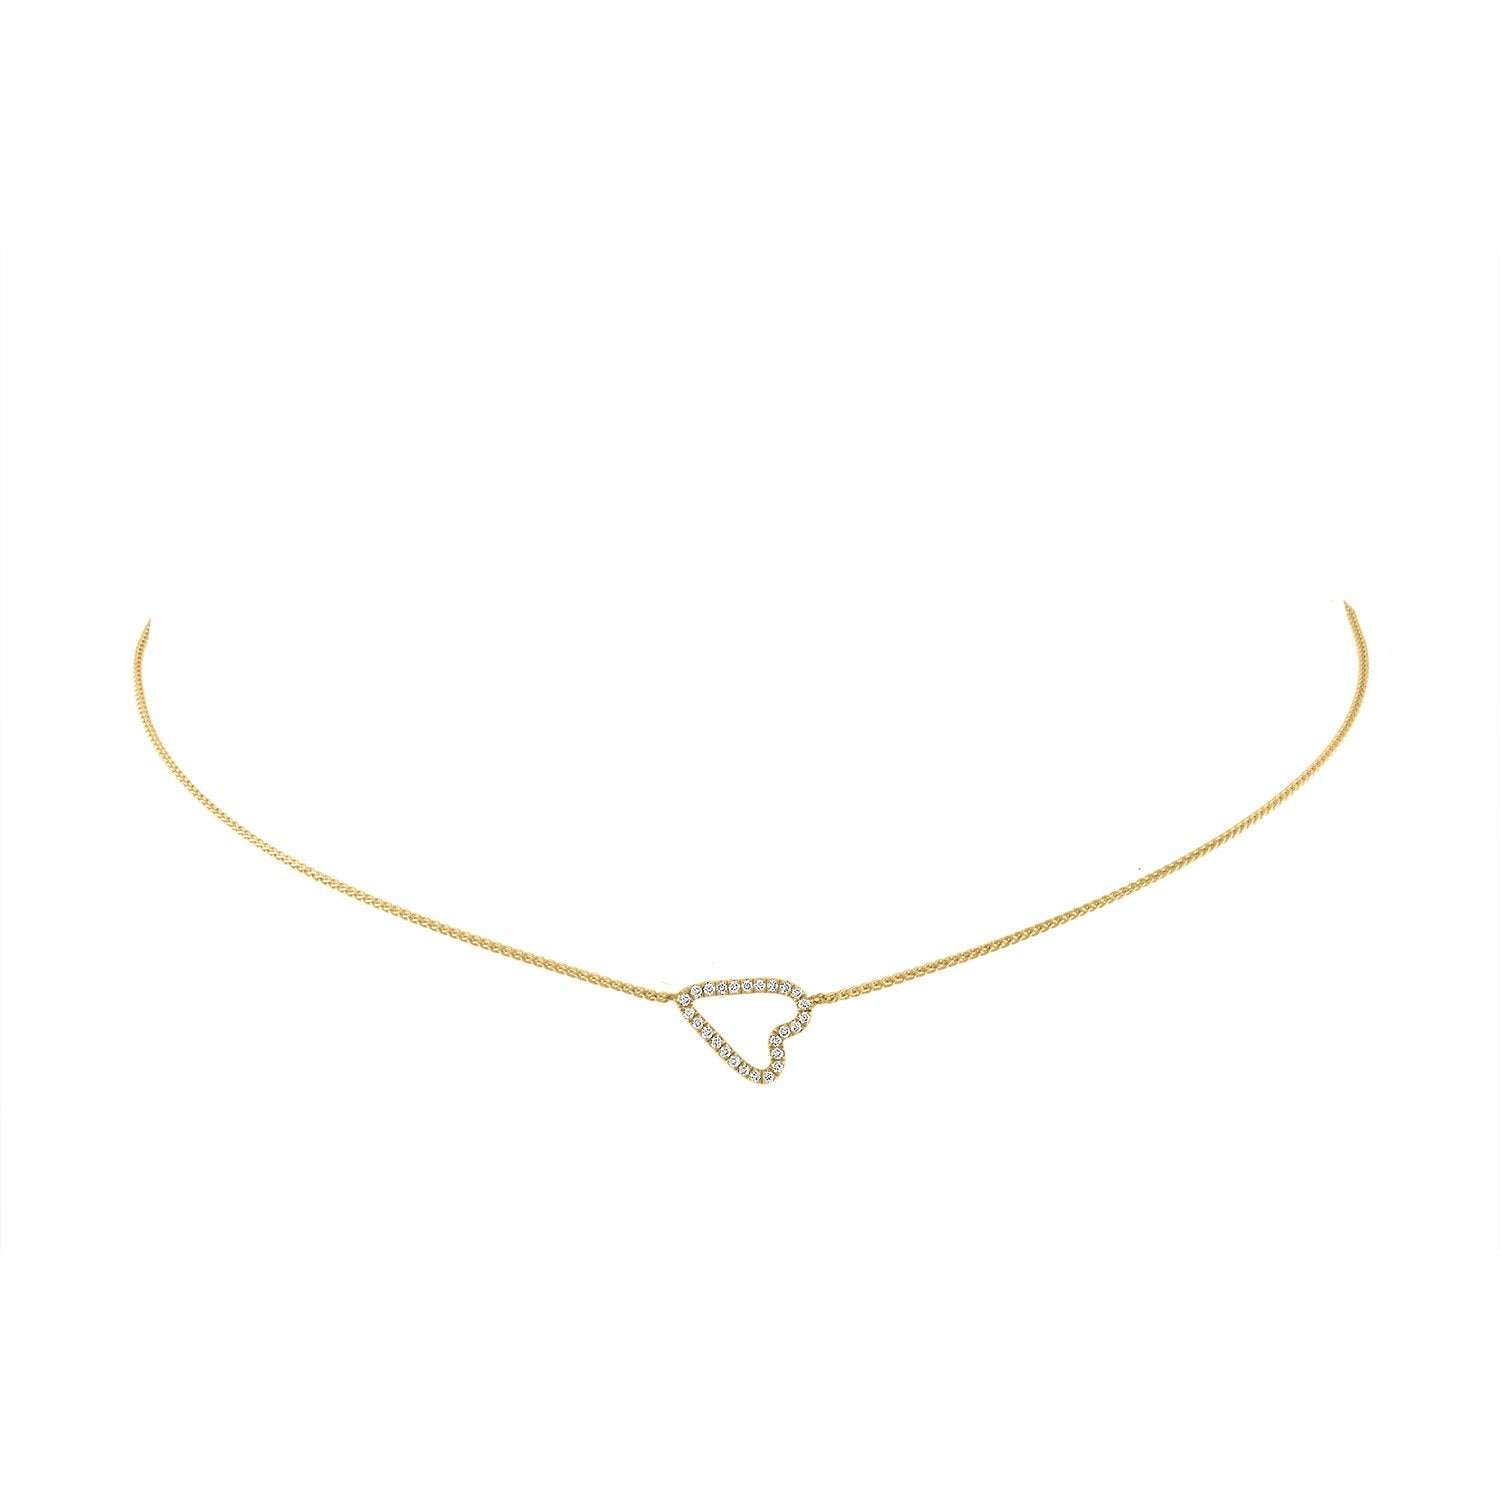 Vincents Fine Jewelry | Jane Kaye | Sideways Pave Heart Necklace